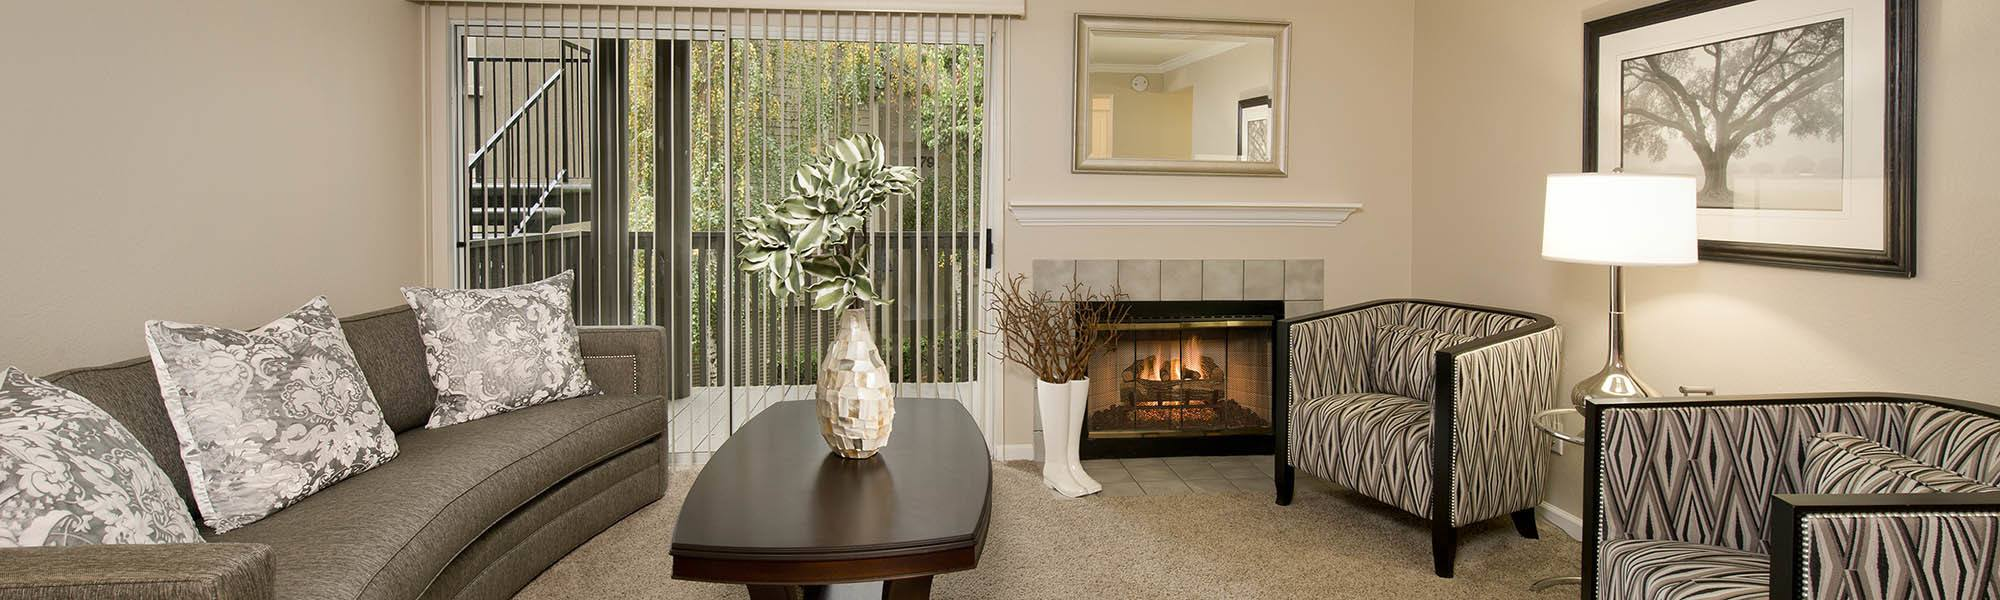 View photos of our luxurious property at Mill Springs Park Apartment Homes in Livermore, CA